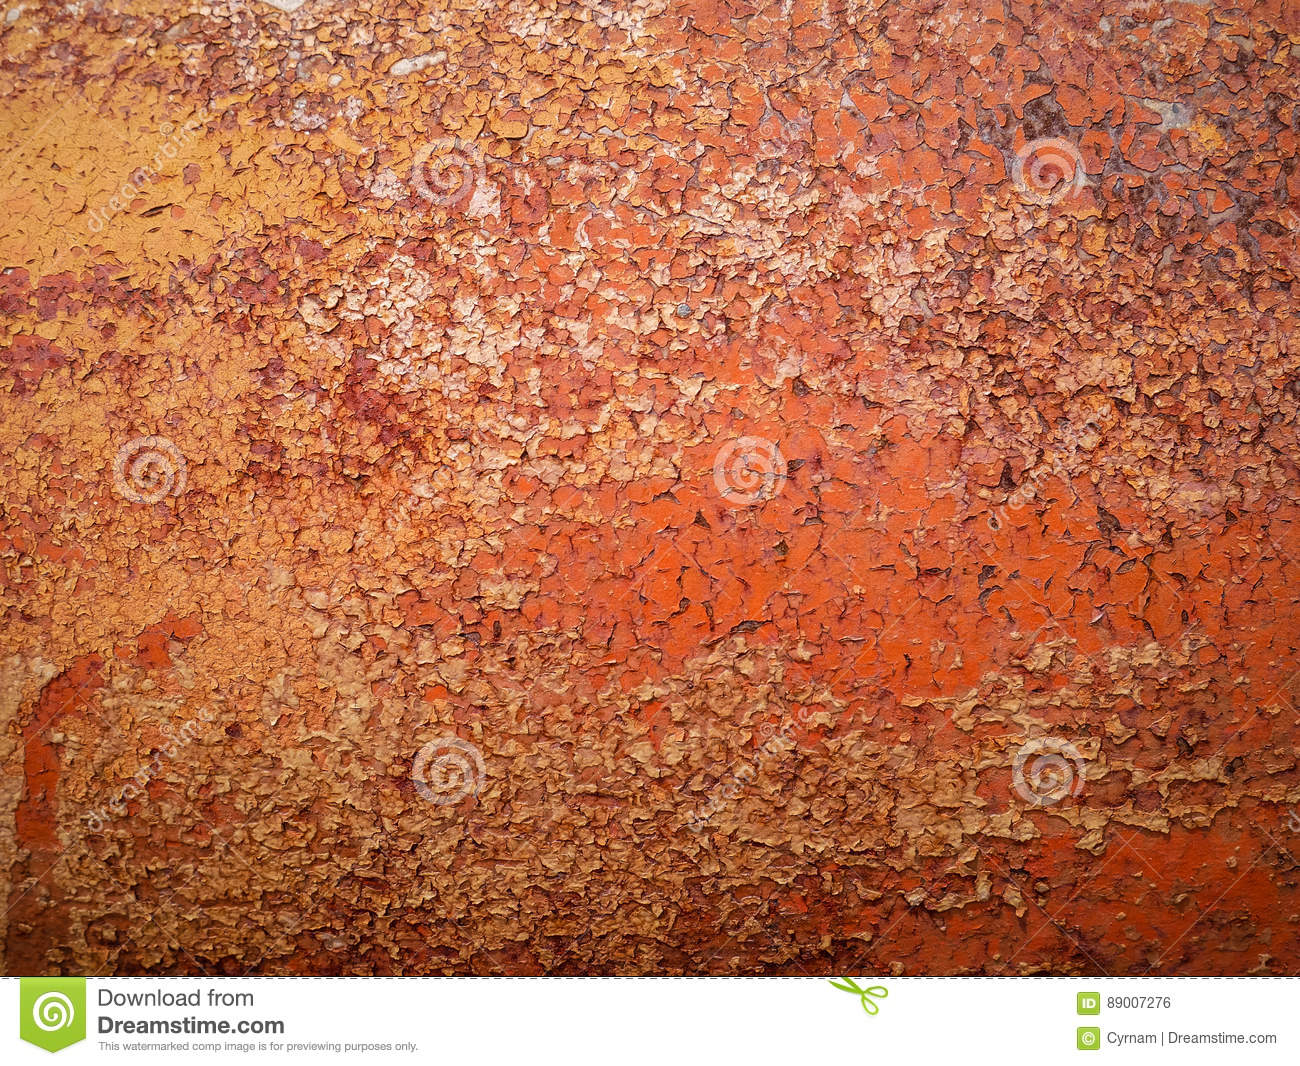 detail and close up of rust on car metal with cracking presence of rust and corrosion. Black Bedroom Furniture Sets. Home Design Ideas